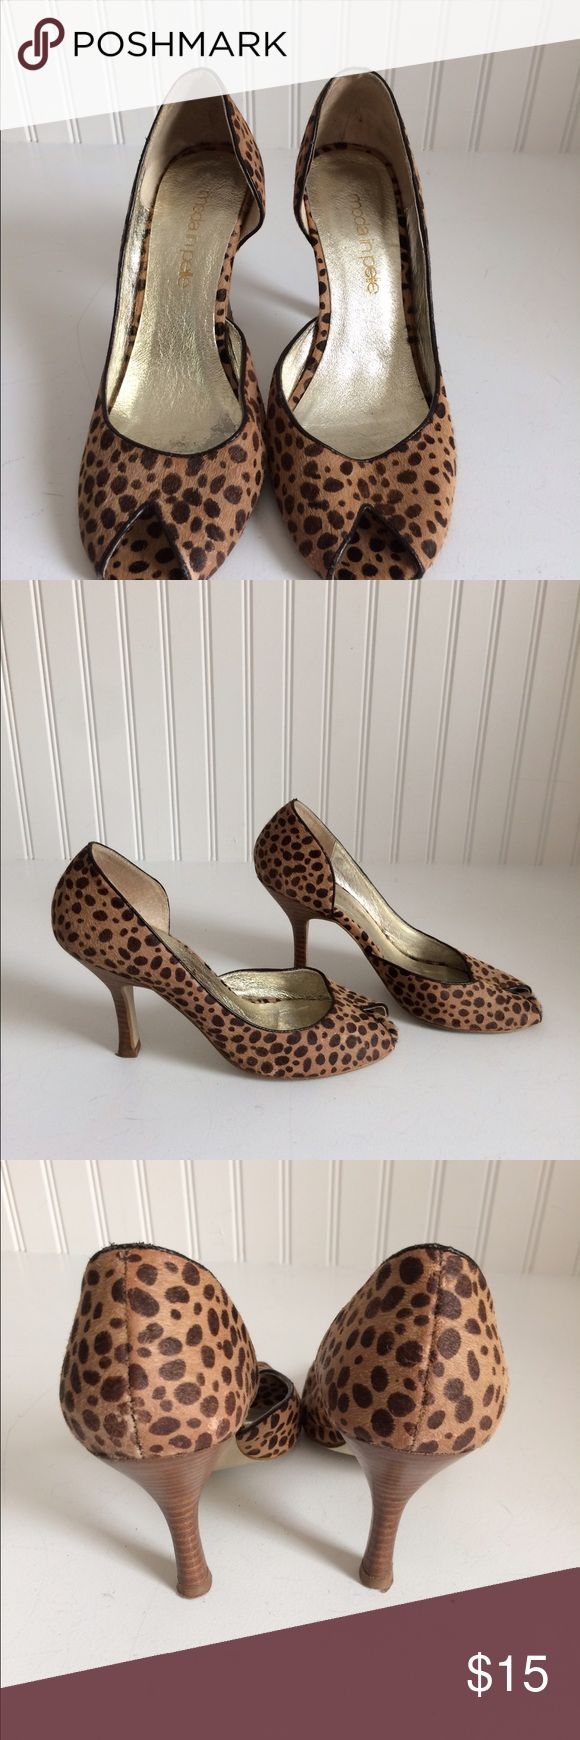 "Moda in Pelle animal print peep toe high heels 6 These super cute open toe Leopard print high heels do show some wear around the toes and the heel area. The wear is mainly mild fading . The sole shows sign of wear.   Size: 6 Heel Height:  3.5"" moda in Pelle Shoes Heels"